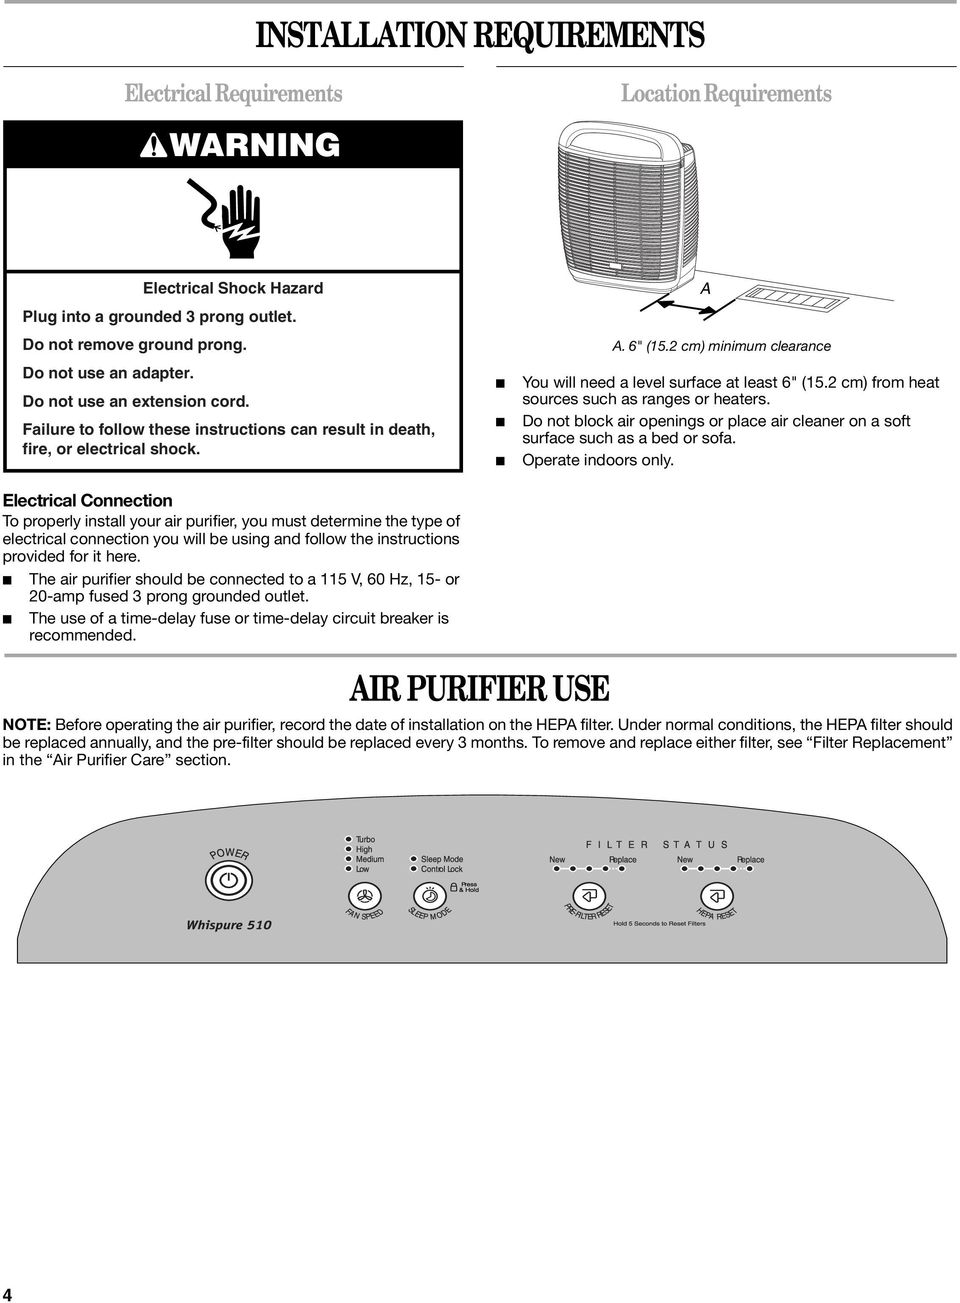 Electrical Connection To properly install your air purifier, you must determine the type of electrical connection you will be using and follow the instructions provided for it here.